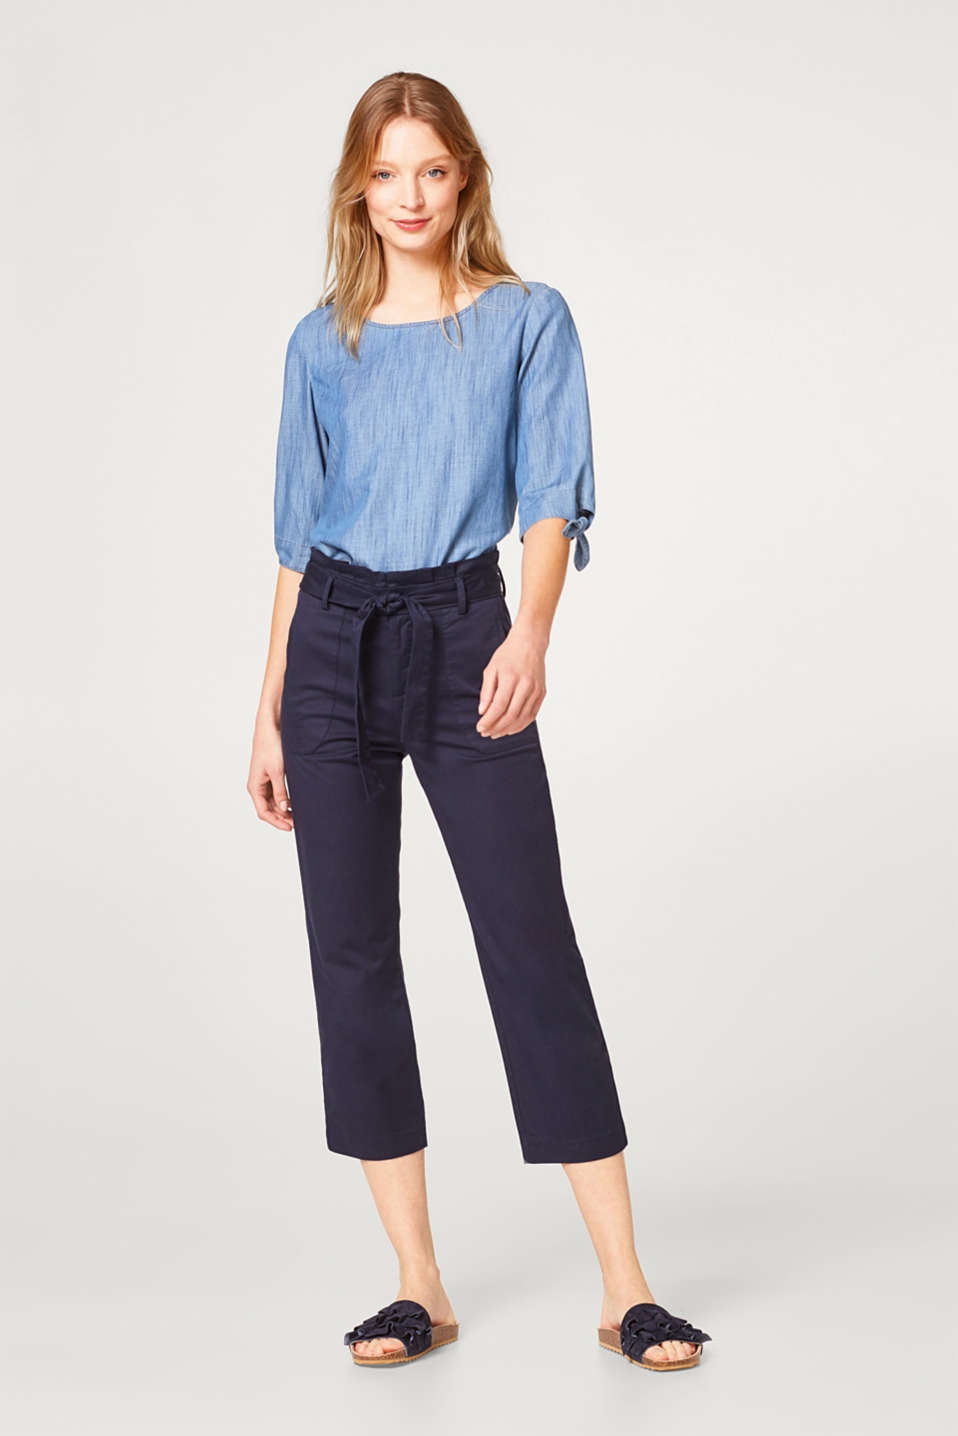 Lightweight denim blouse with bow details